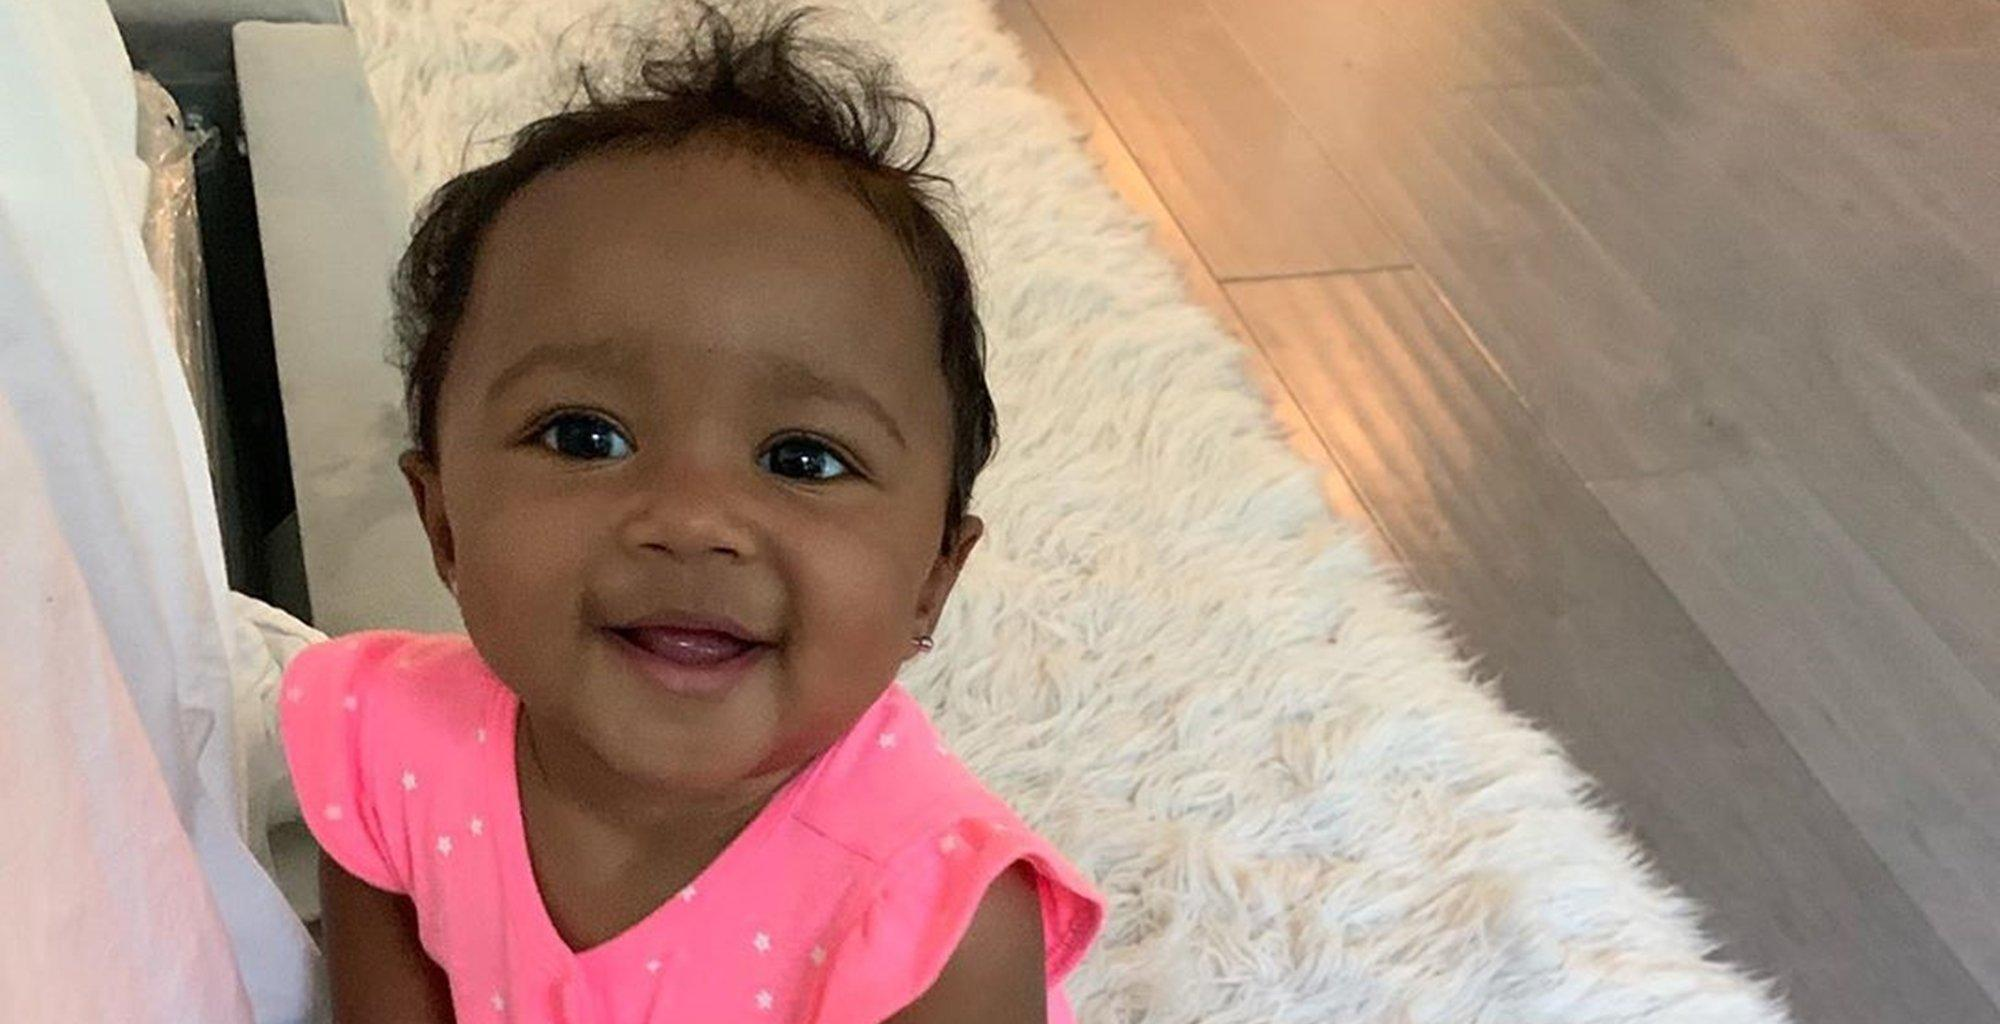 Kenya Moore's Baby Girl, Brooklyn Daly, Takes Her Mini Toilet For A Test Run